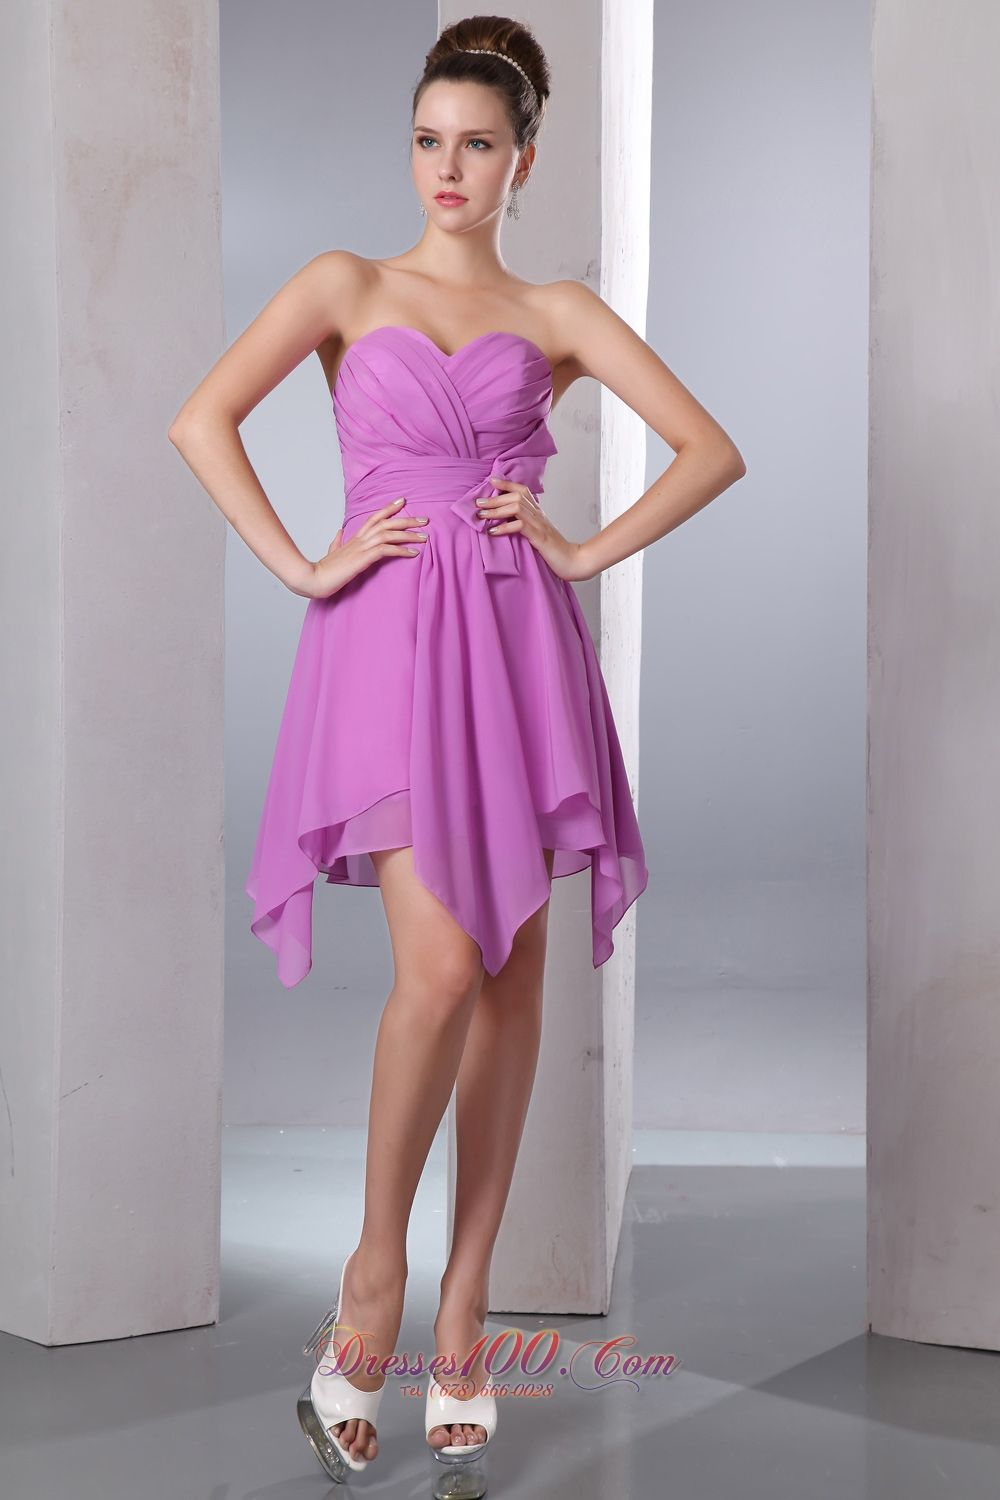 dresses for damas for fatherus day brand new modest